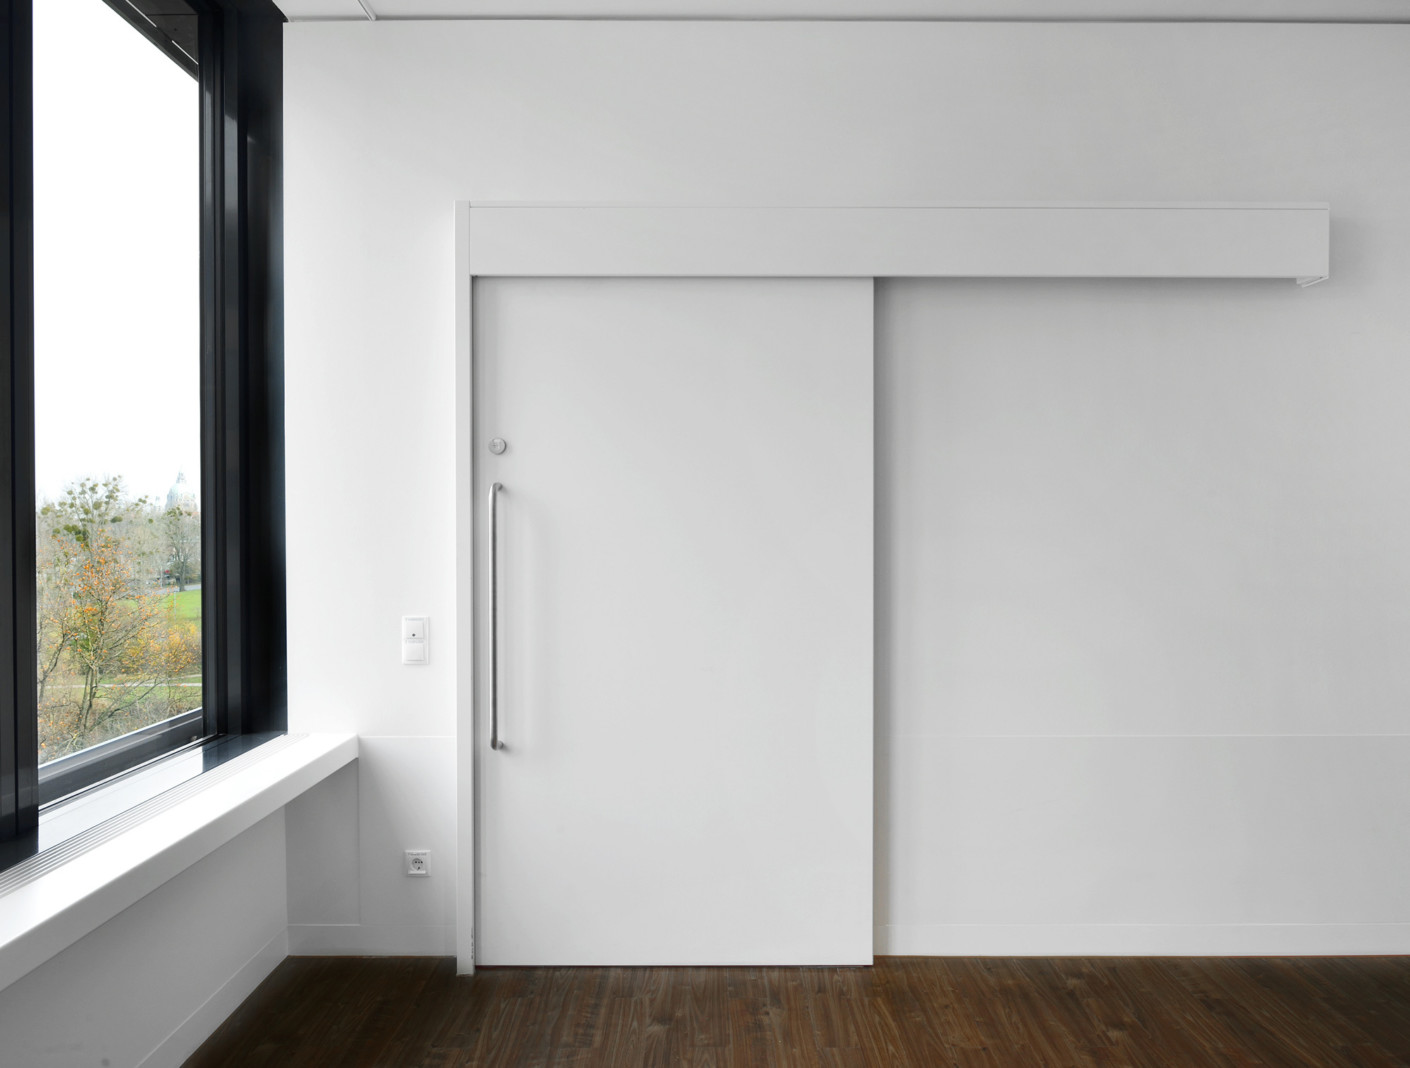 Soundproofing sliding door T0-1 by Lindner Group